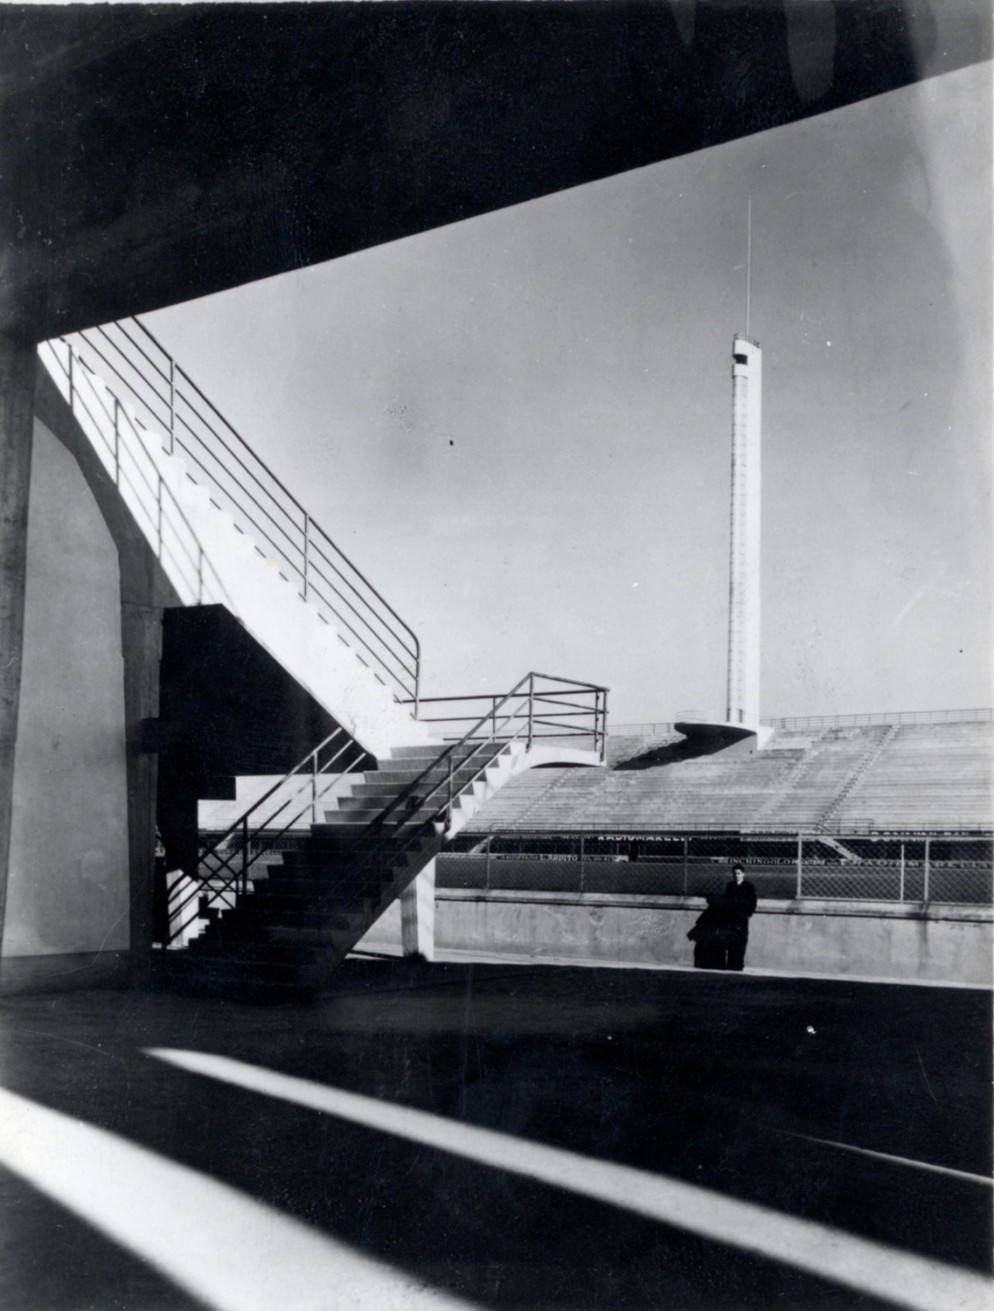 Foto di Pier Luigi Nervi all_interno dello stadio da poco inaugurato_1932 Ph. courtesy Pier Luigi Nervi Project Association, Bruxelles